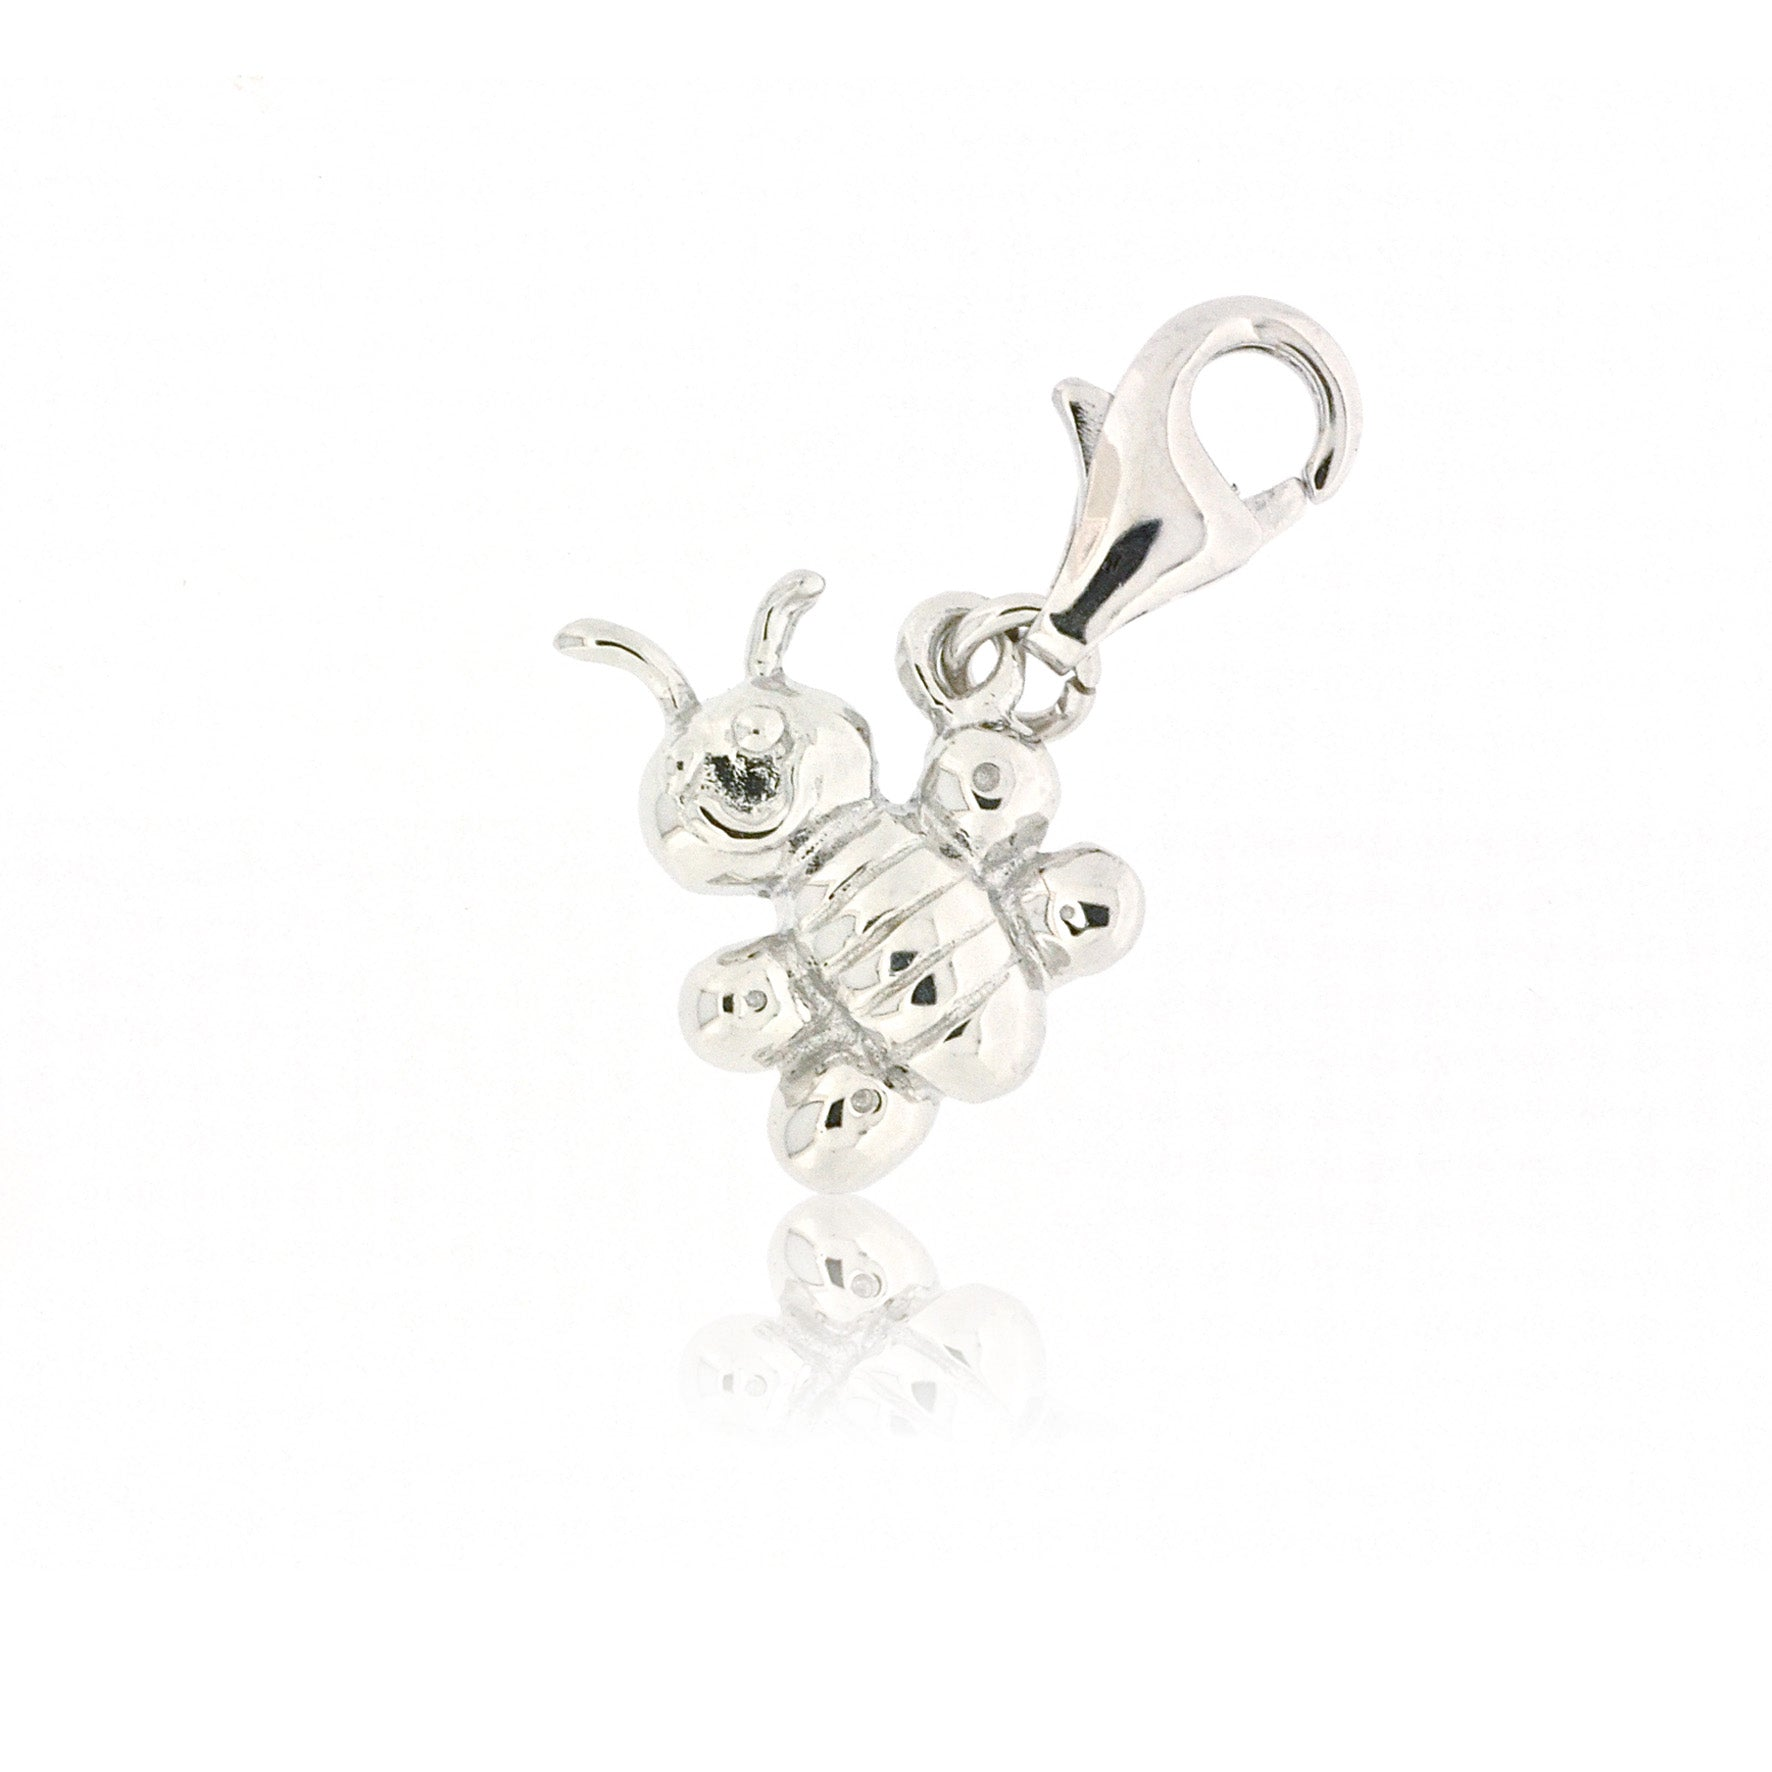 Mimi Too Character Bracelet  Charms - Sterling Silver - Bee